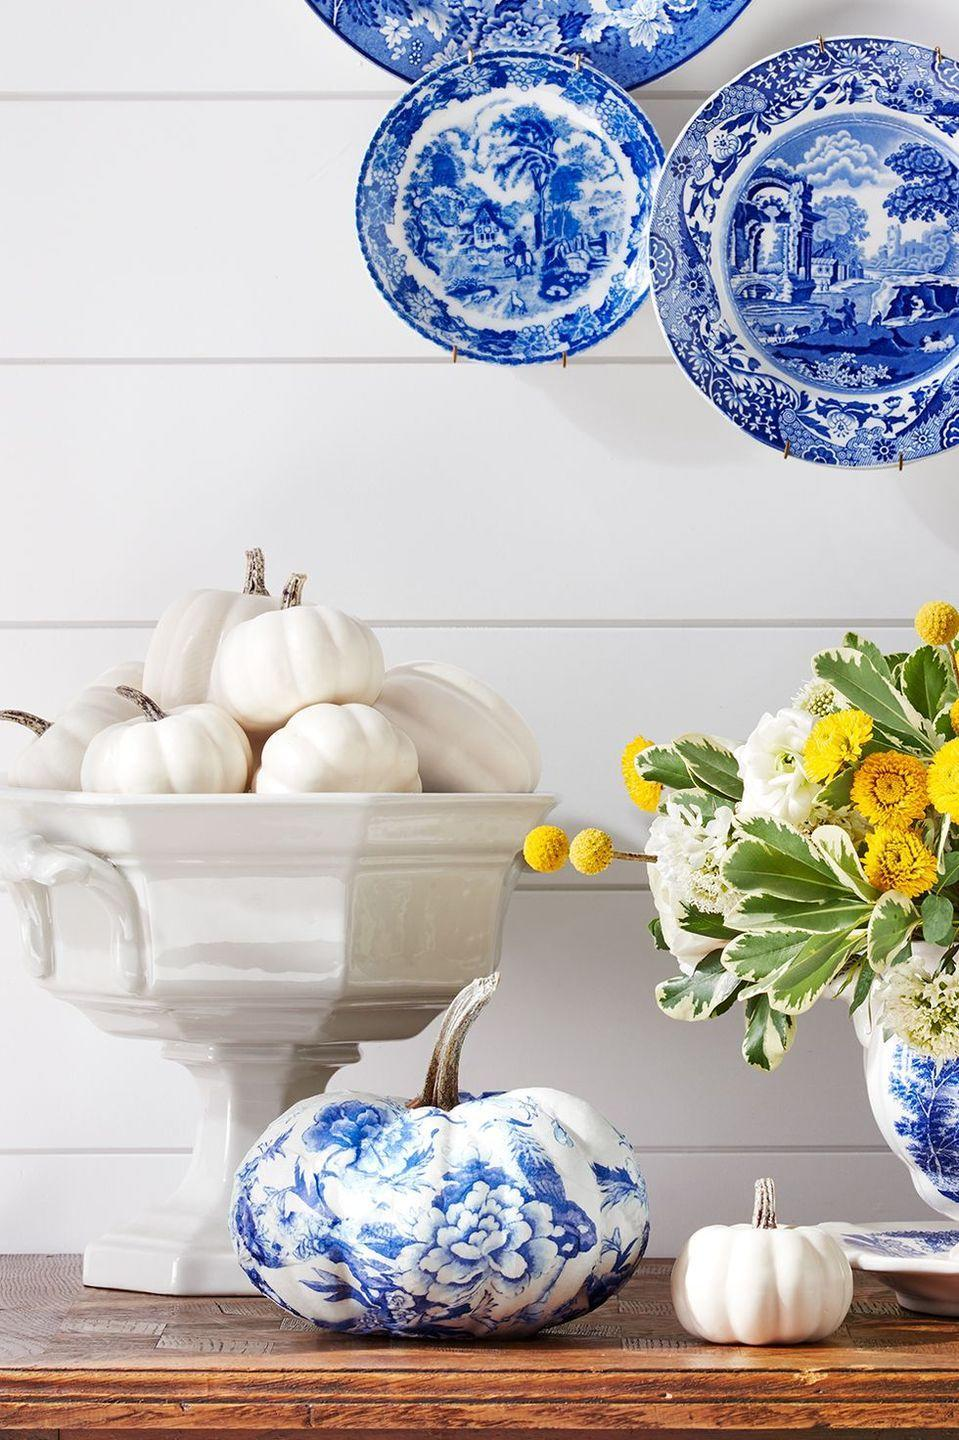 <p>If you're obsessed with interior design, this chinoiserie painted pumpkin idea is for you. To amp up the look, pair the centerpiece with dishware of the same style.</p>